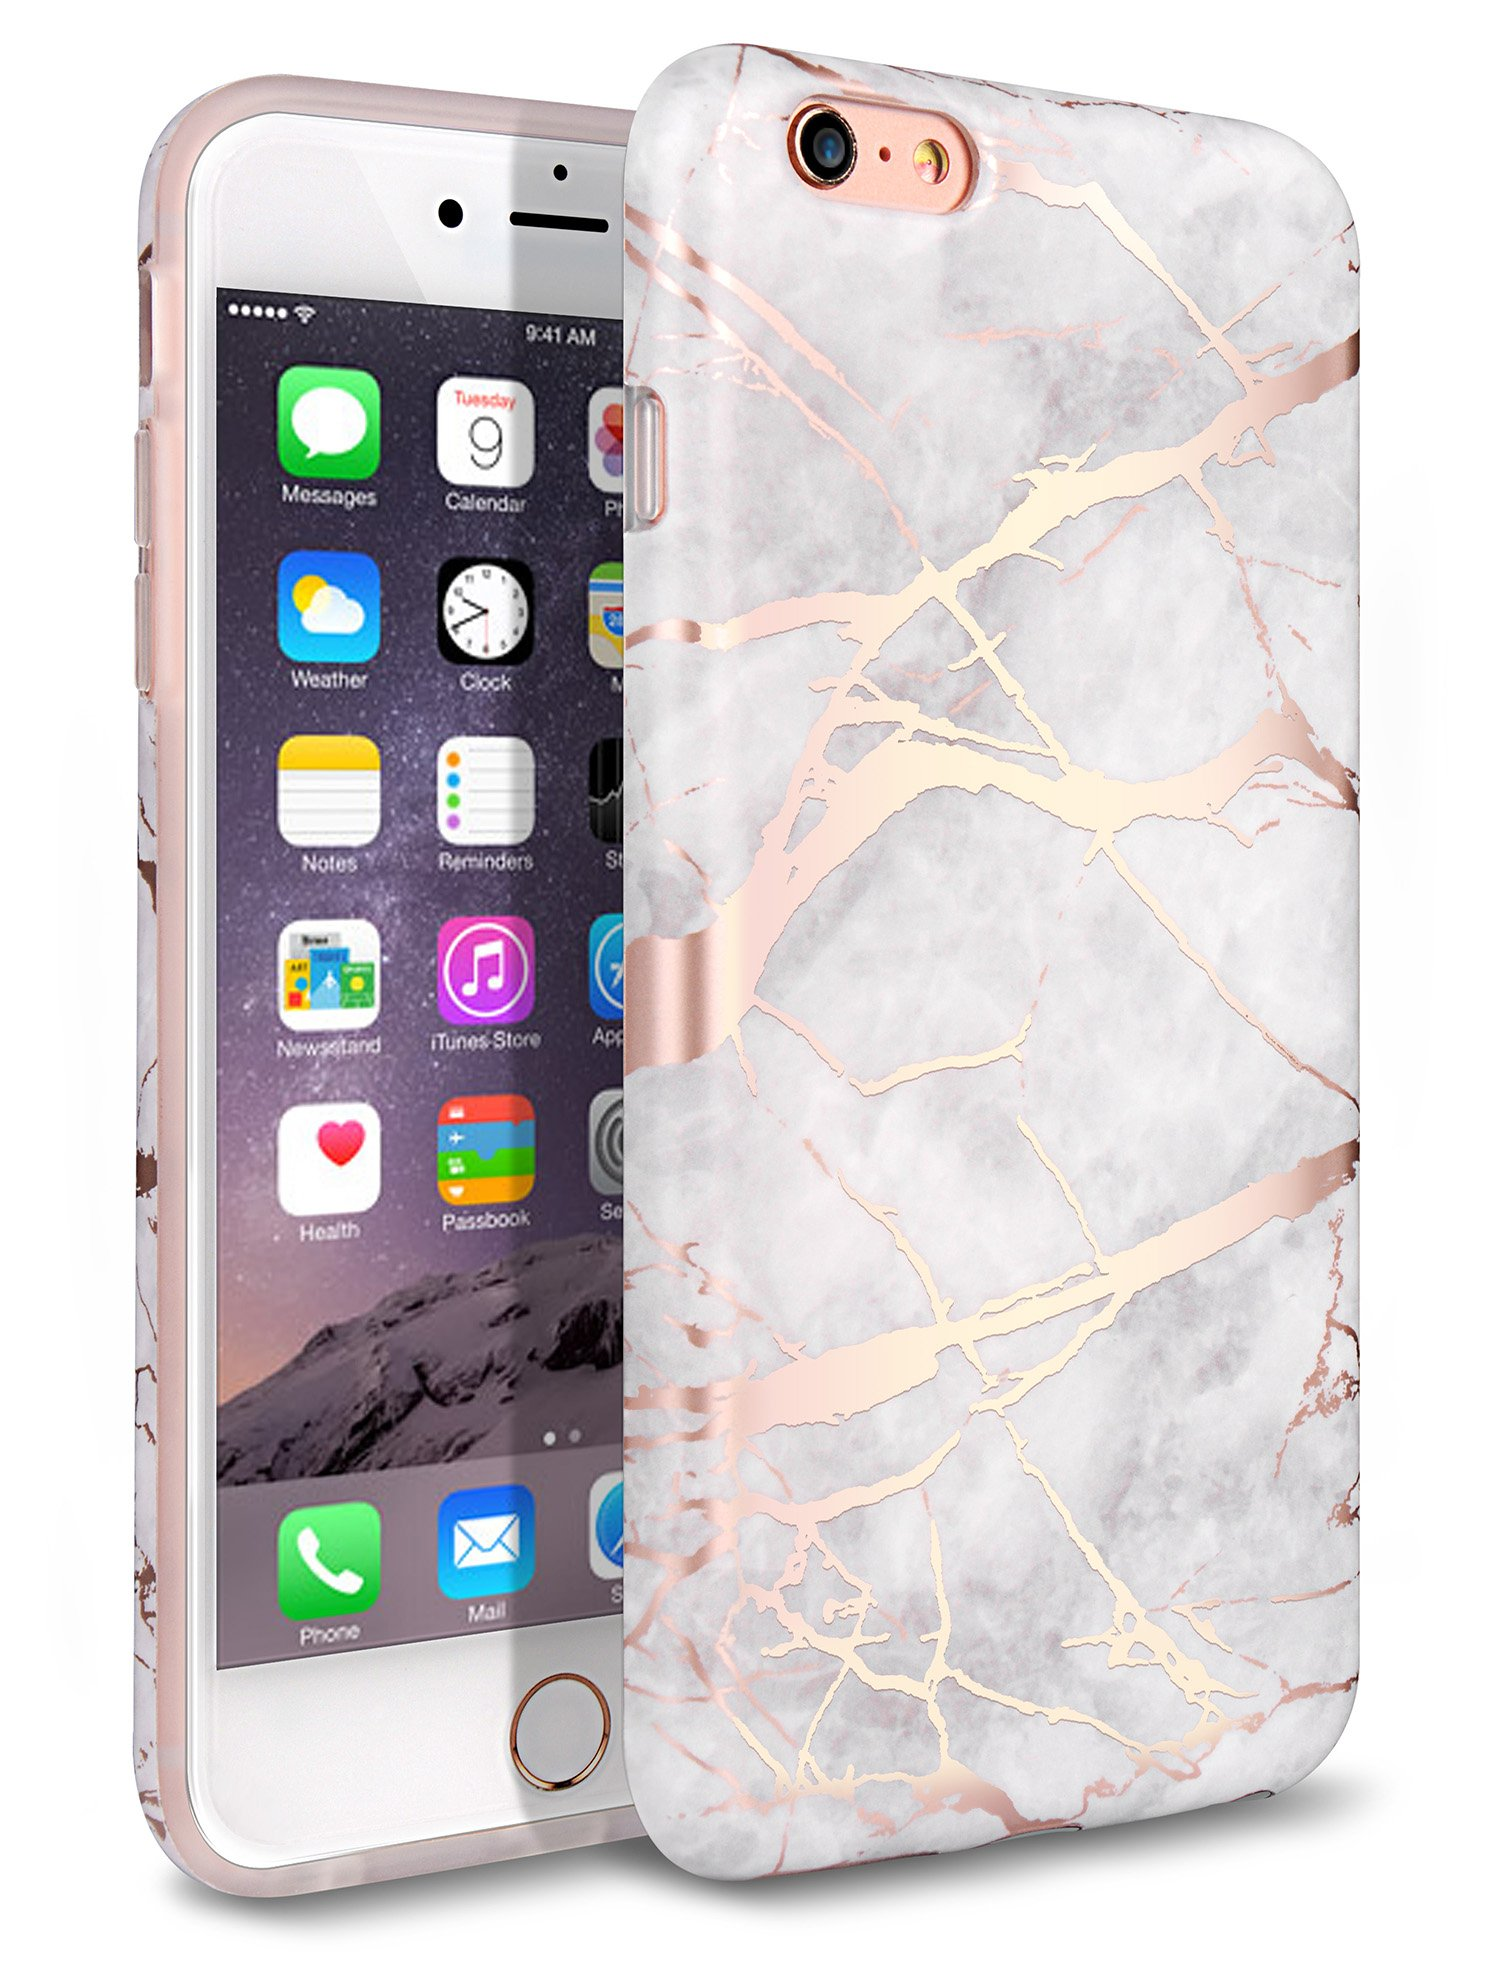 iphone 6 plus case iphone 6s plus case shiny rose gold white marble desig new 763383231972 ebay. Black Bedroom Furniture Sets. Home Design Ideas